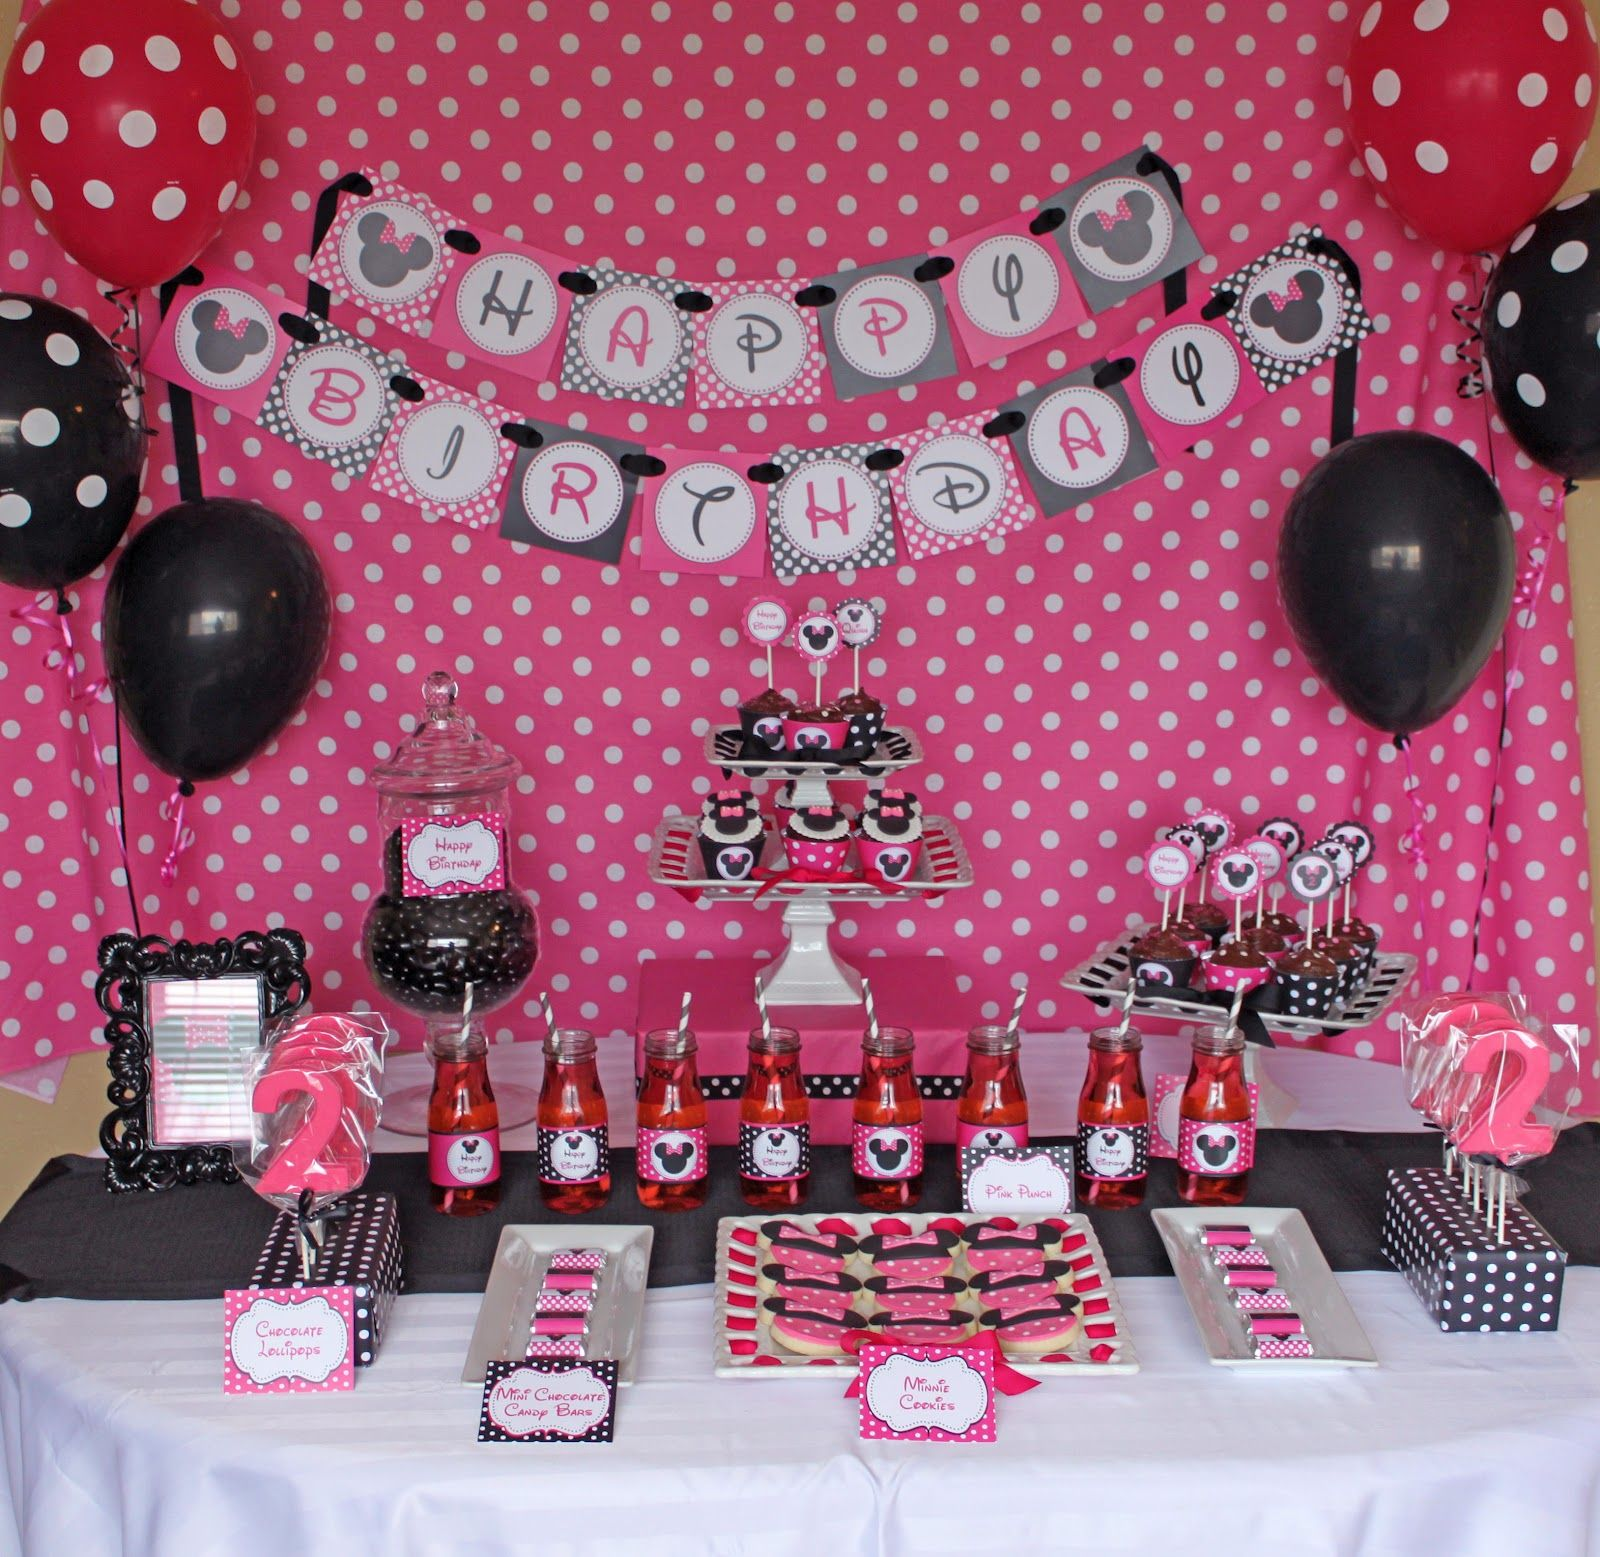 Cupcake Express Minnie Mouse Birthday Party Minnie Mouse Birthday Party Minnie Mouse Party Decorations Minnie Mouse Birthday